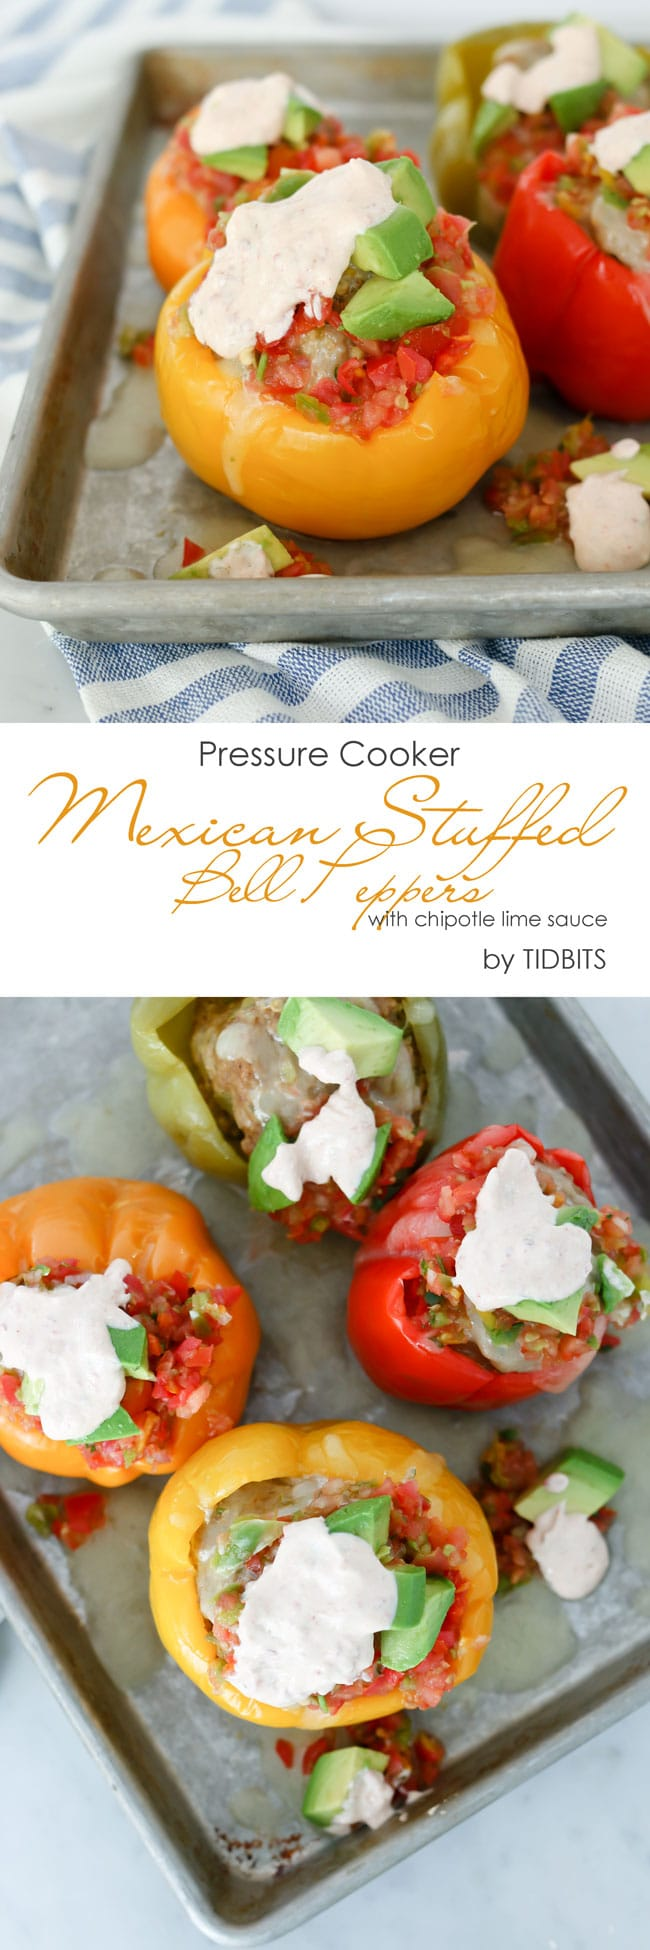 Pressure Cooker Mexican Stuffed Bell Pepper with chipotle lime sauce.